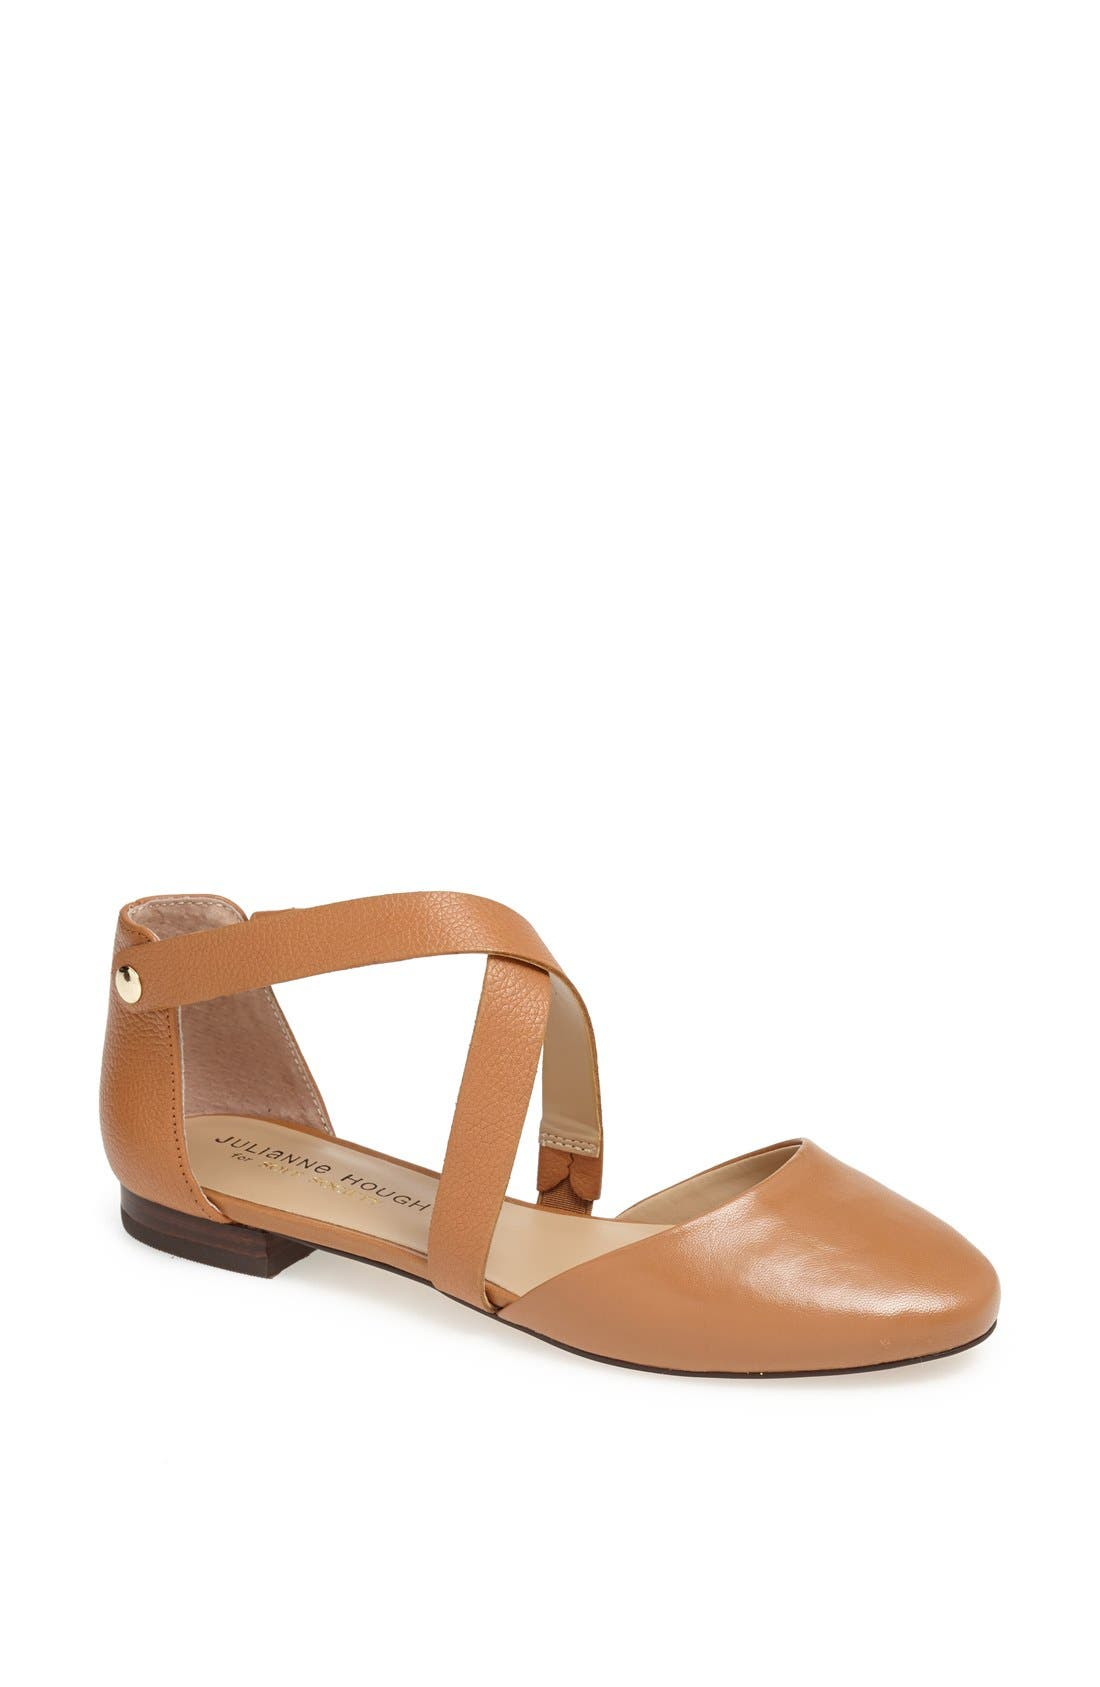 Main Image - Julianne Hough for Sole Society 'Ananda' Leather Flat